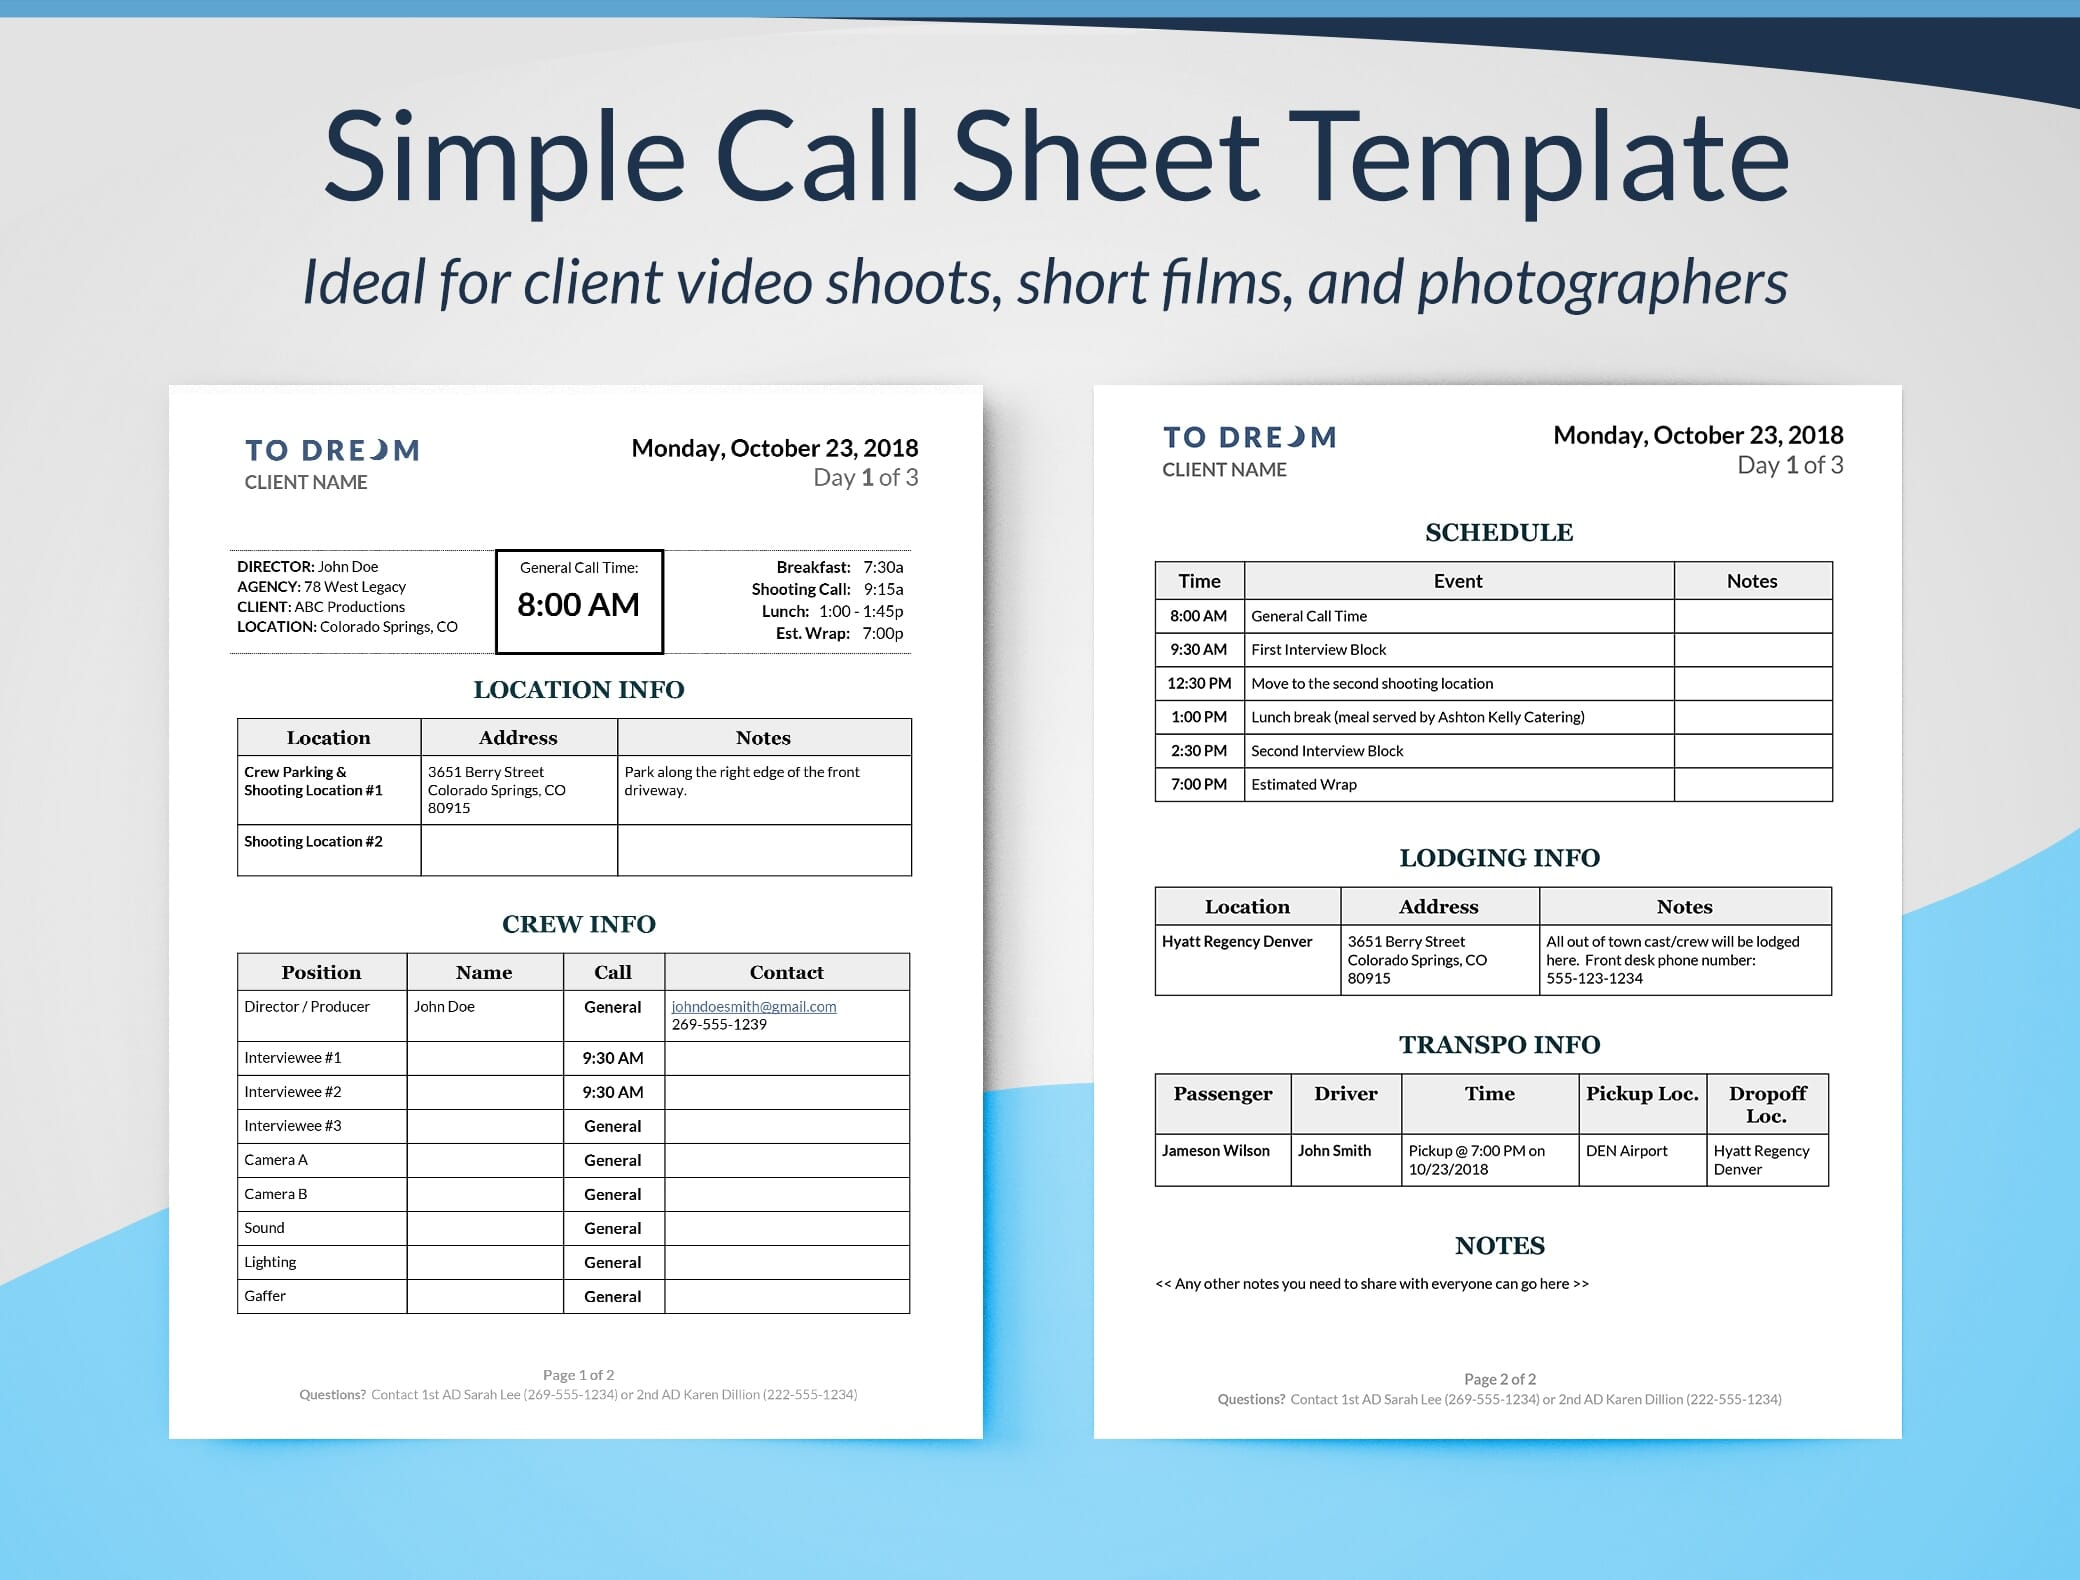 Simple call sheet template word doc | sethero.